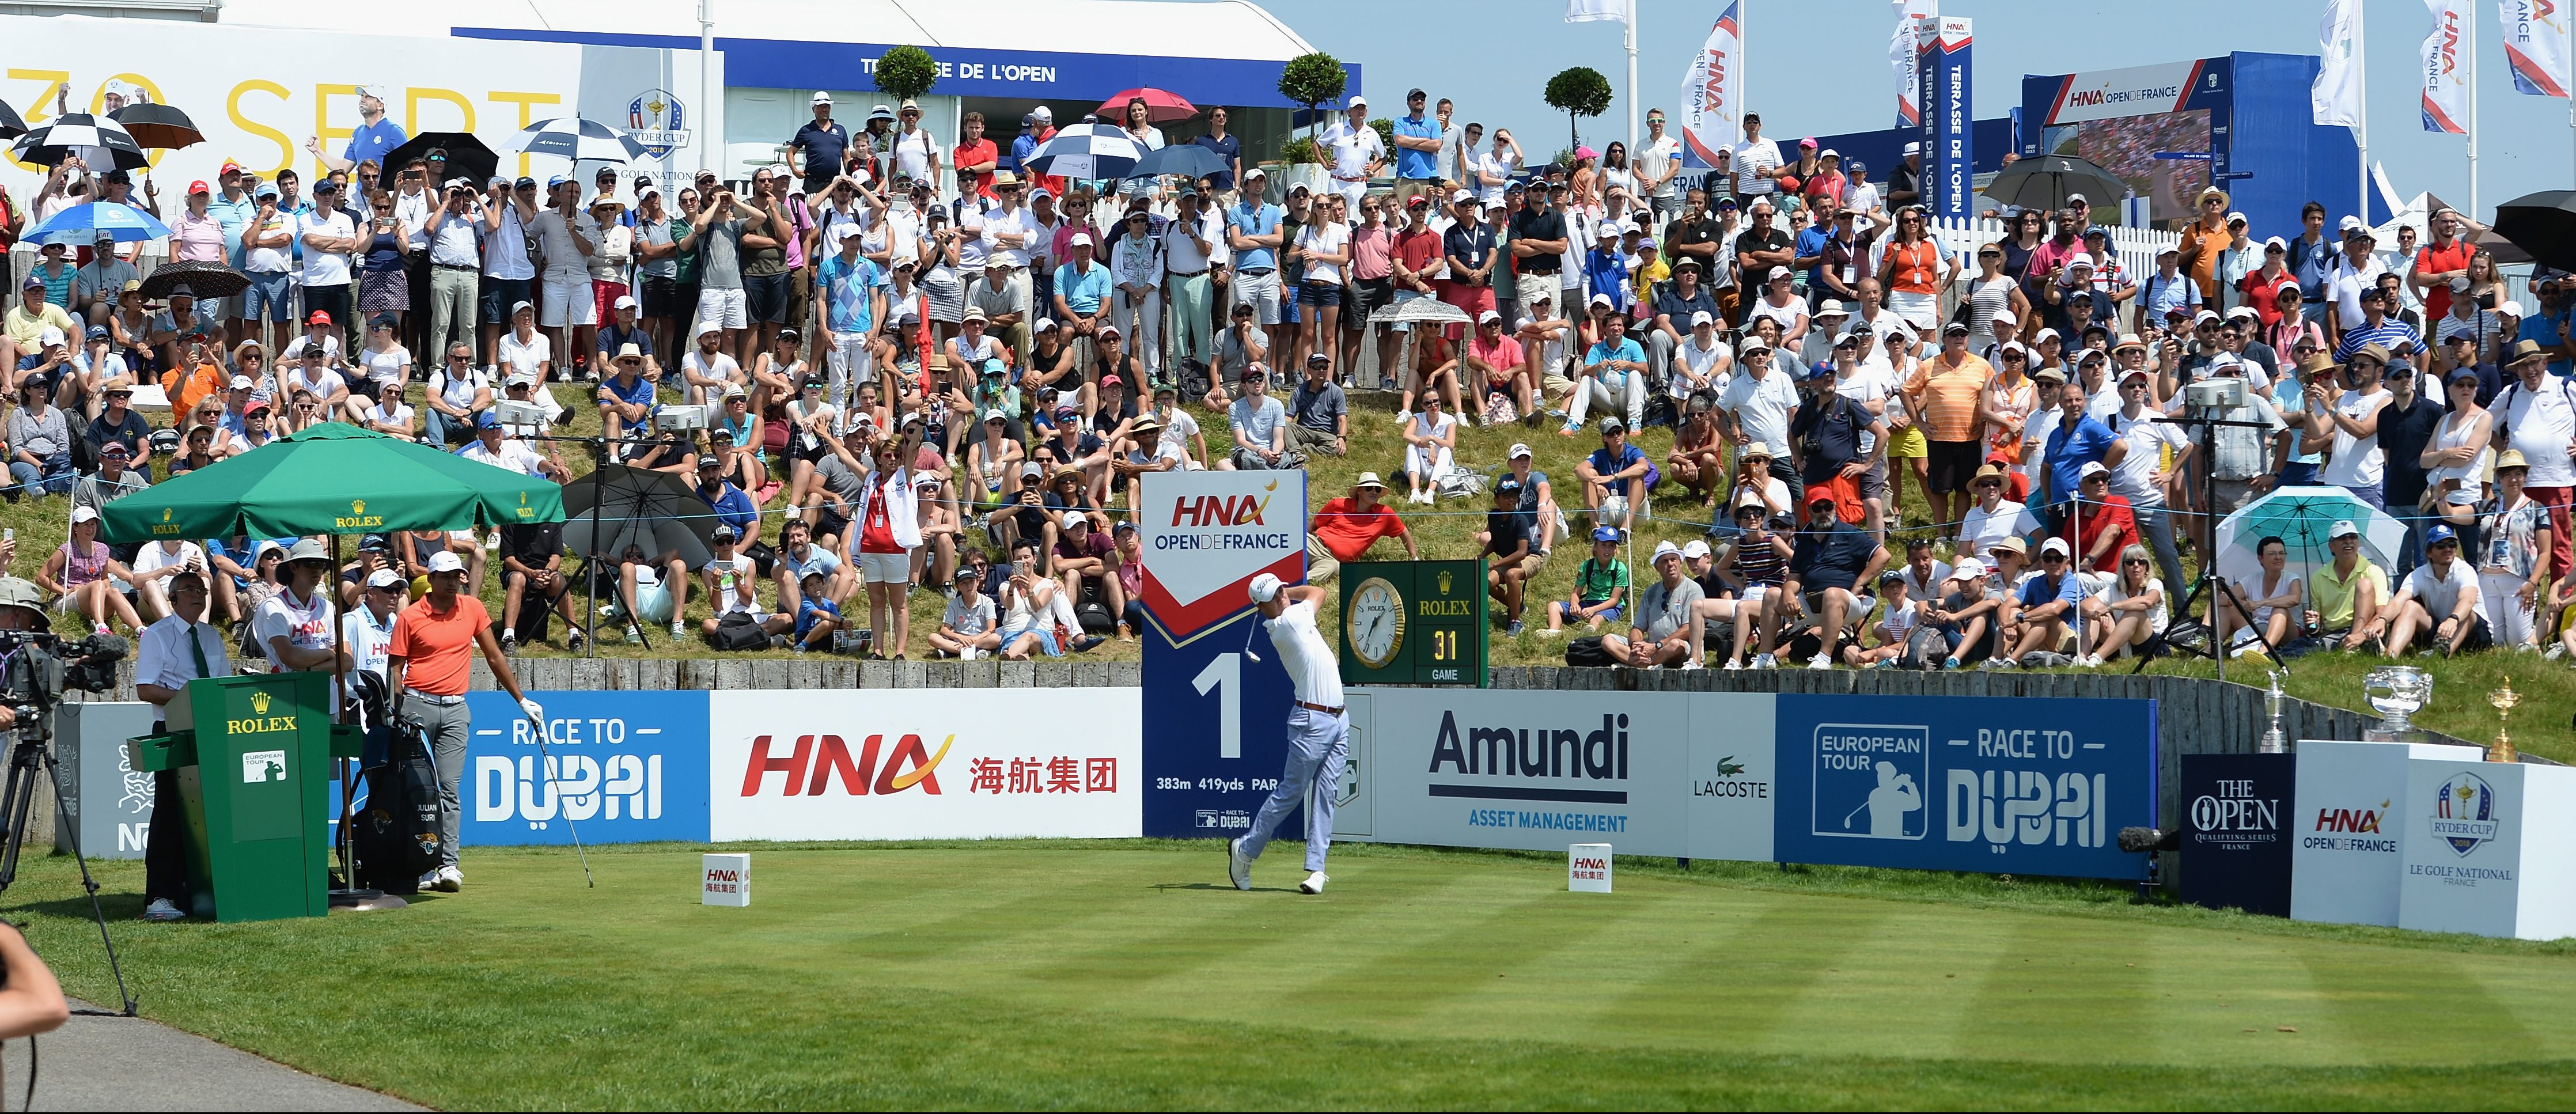 PARIS, FRANCE - JULY 01: Justin Thomas of the United States plays his first shot on the 1st tee during final round of the HNA Open de France at Le Golf National on July 1, 2018 in Paris, France. (Photo by Tony Marshall/Getty Images)